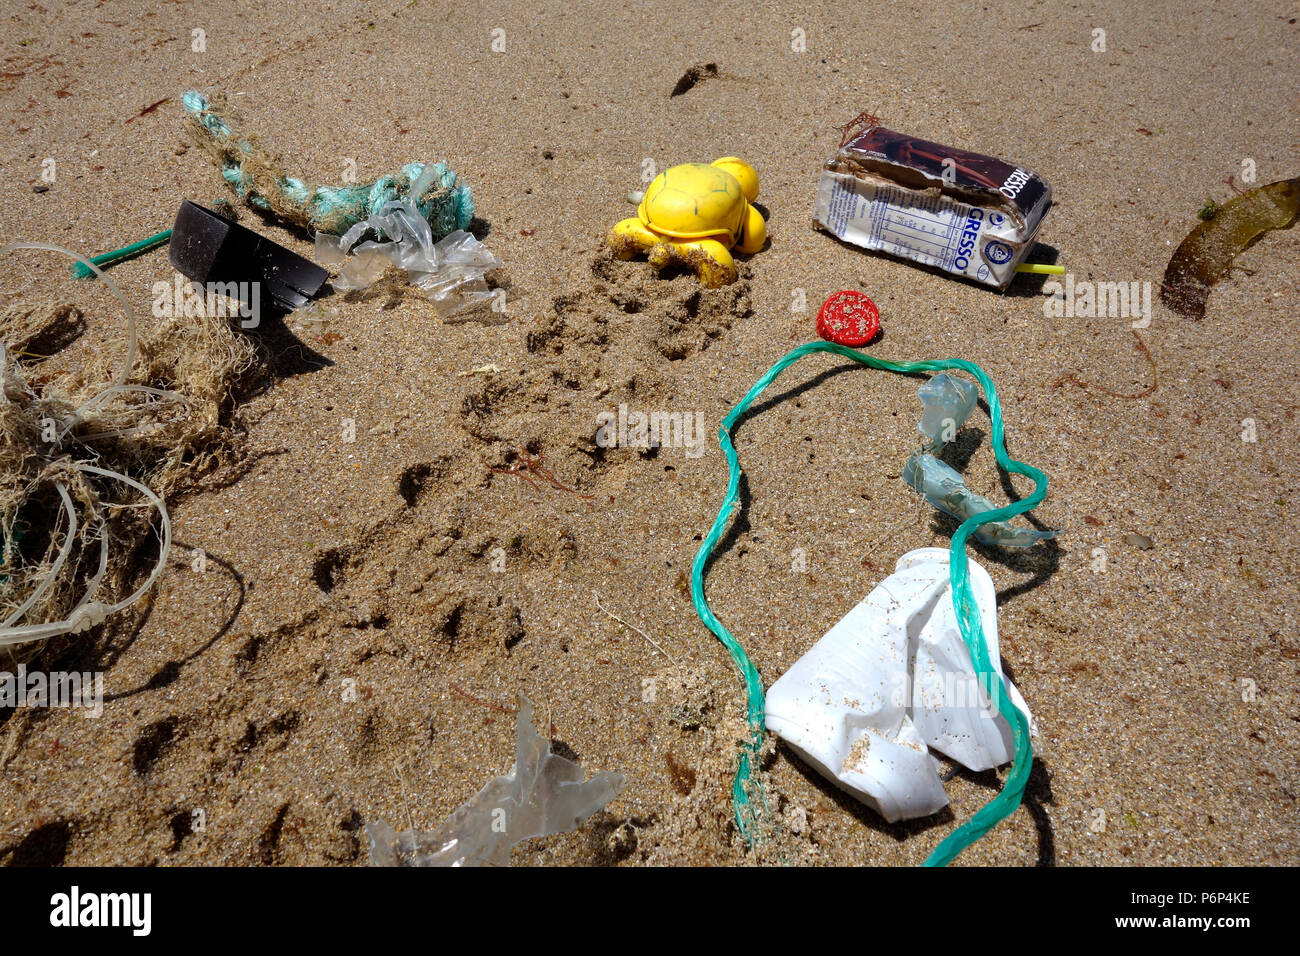 Plastic turtle thrown by the sea in a beach. Concept image depicting the plastic garbage pollution at the ocean. - Stock Image